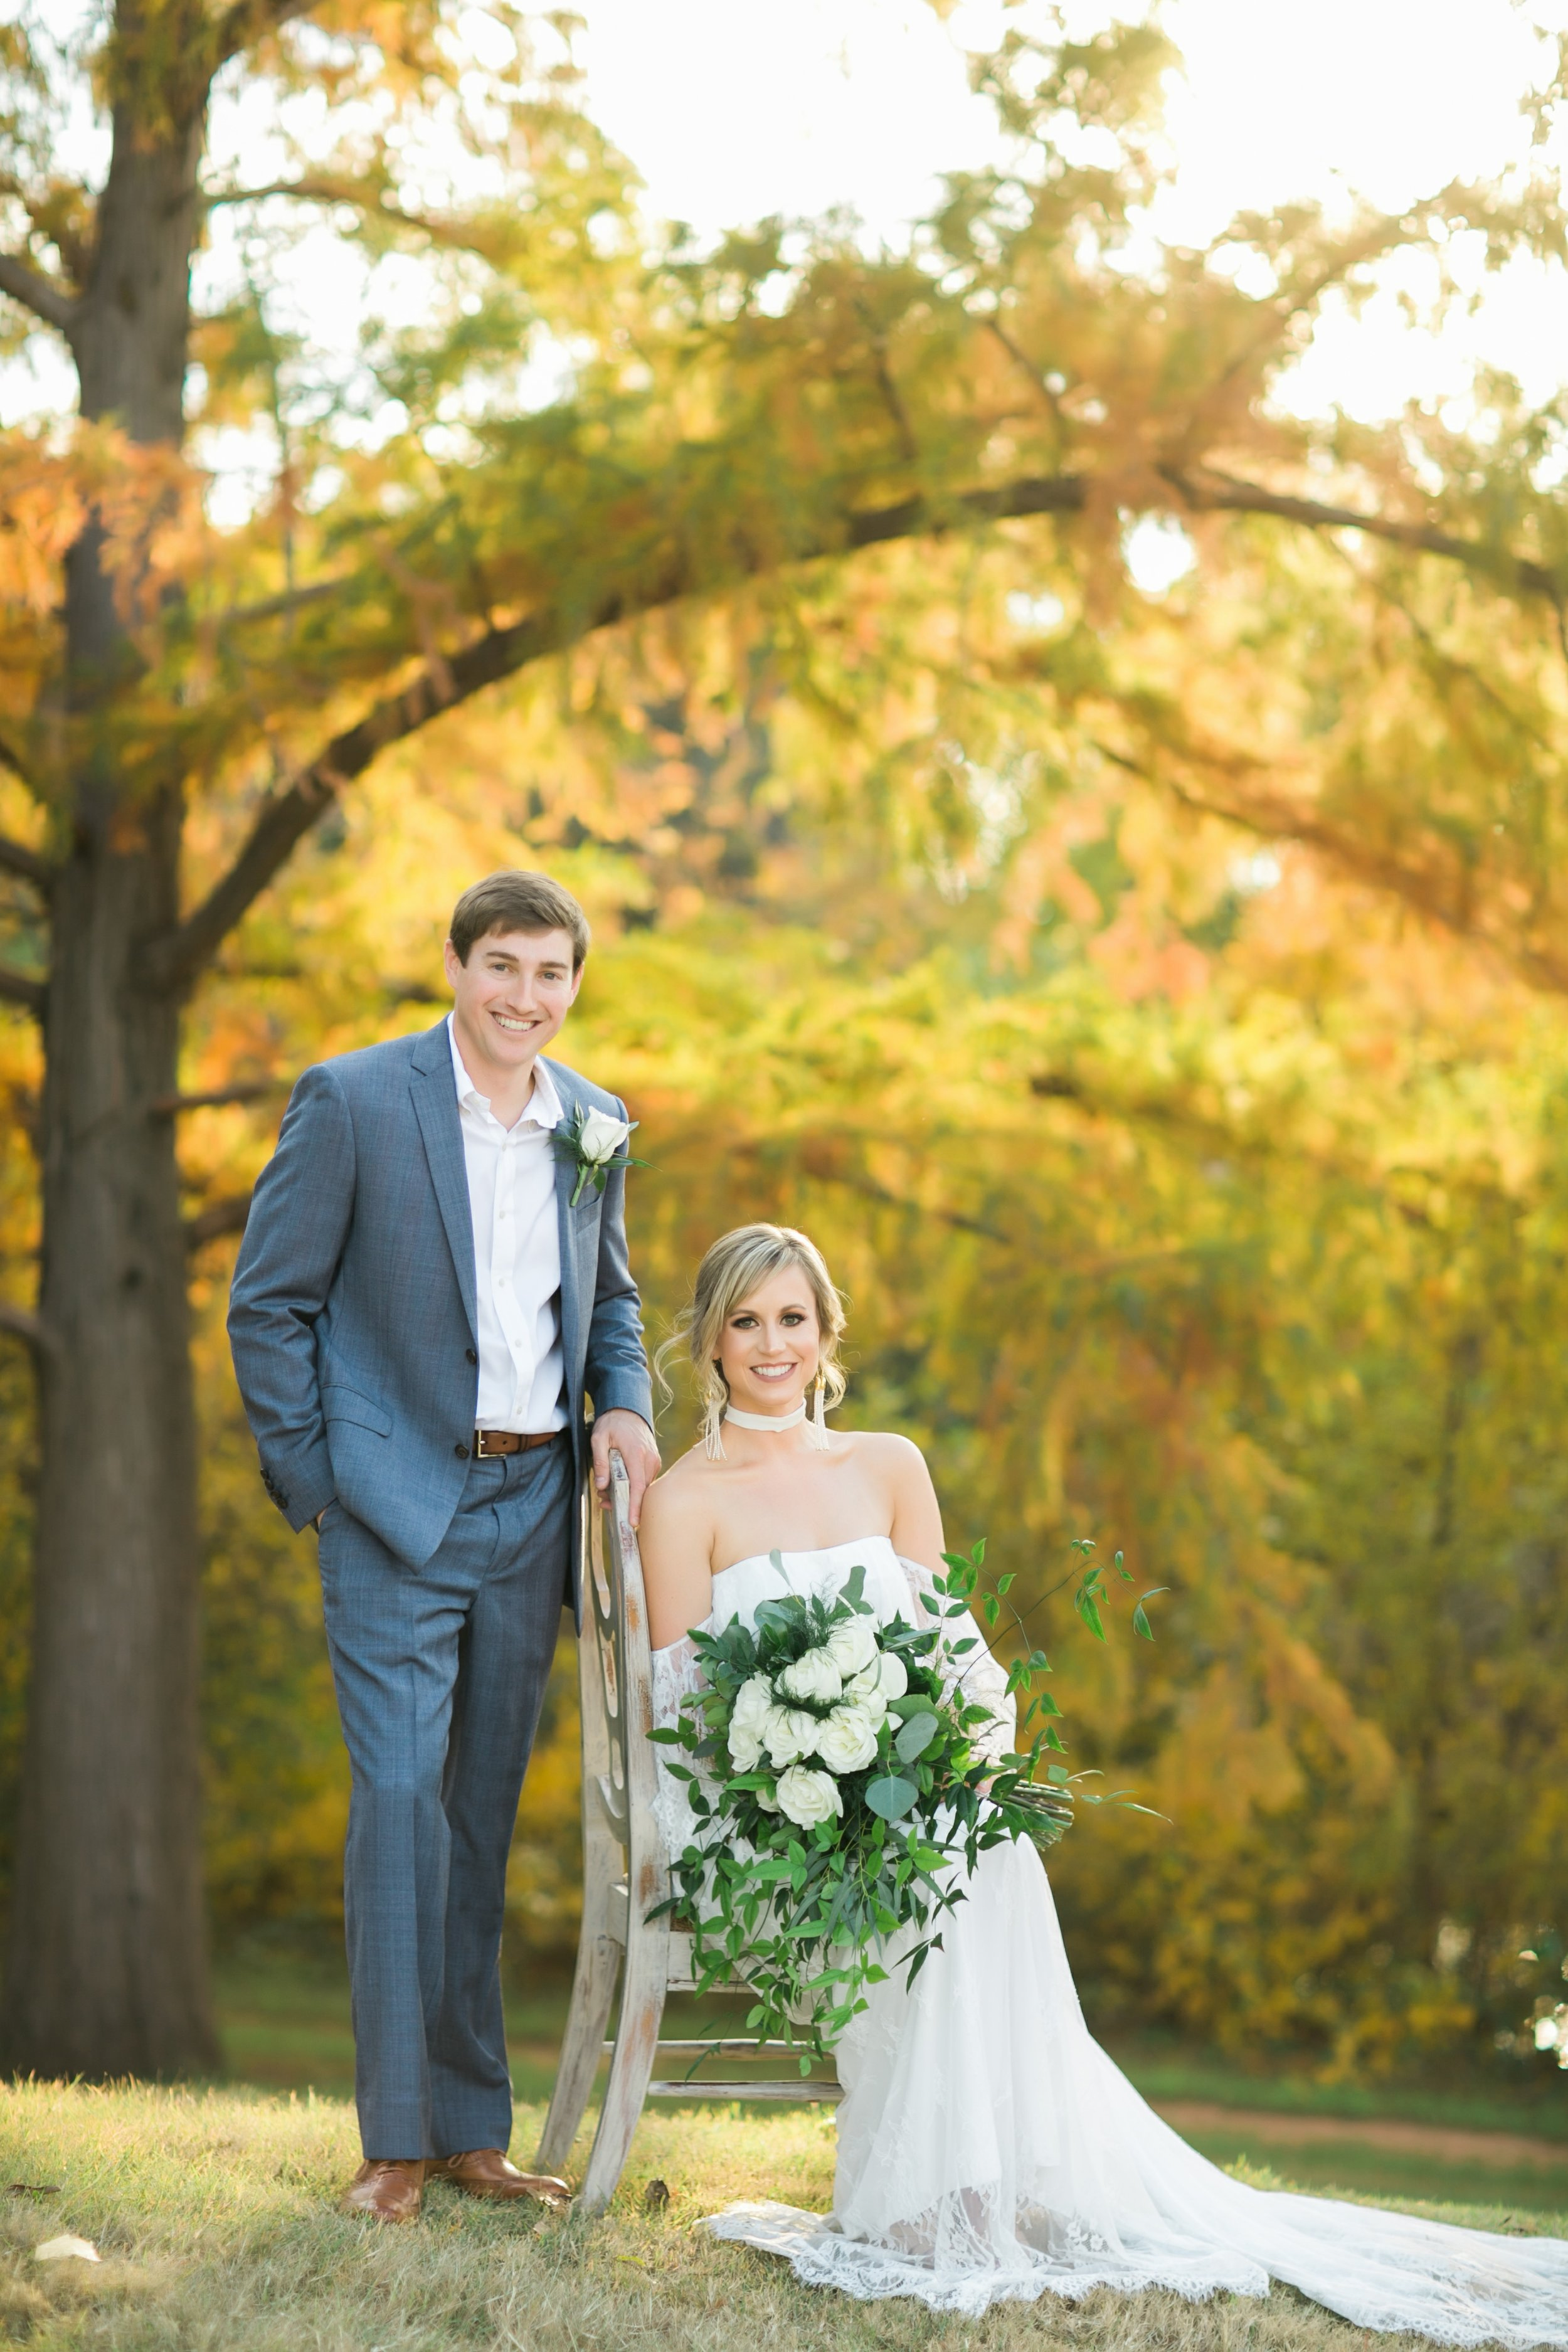 Magan-Landon-Surprise-wedding-at-southern-jeweled-warehouse-wichita-falls-texas-lauren-pinson-028.jpg